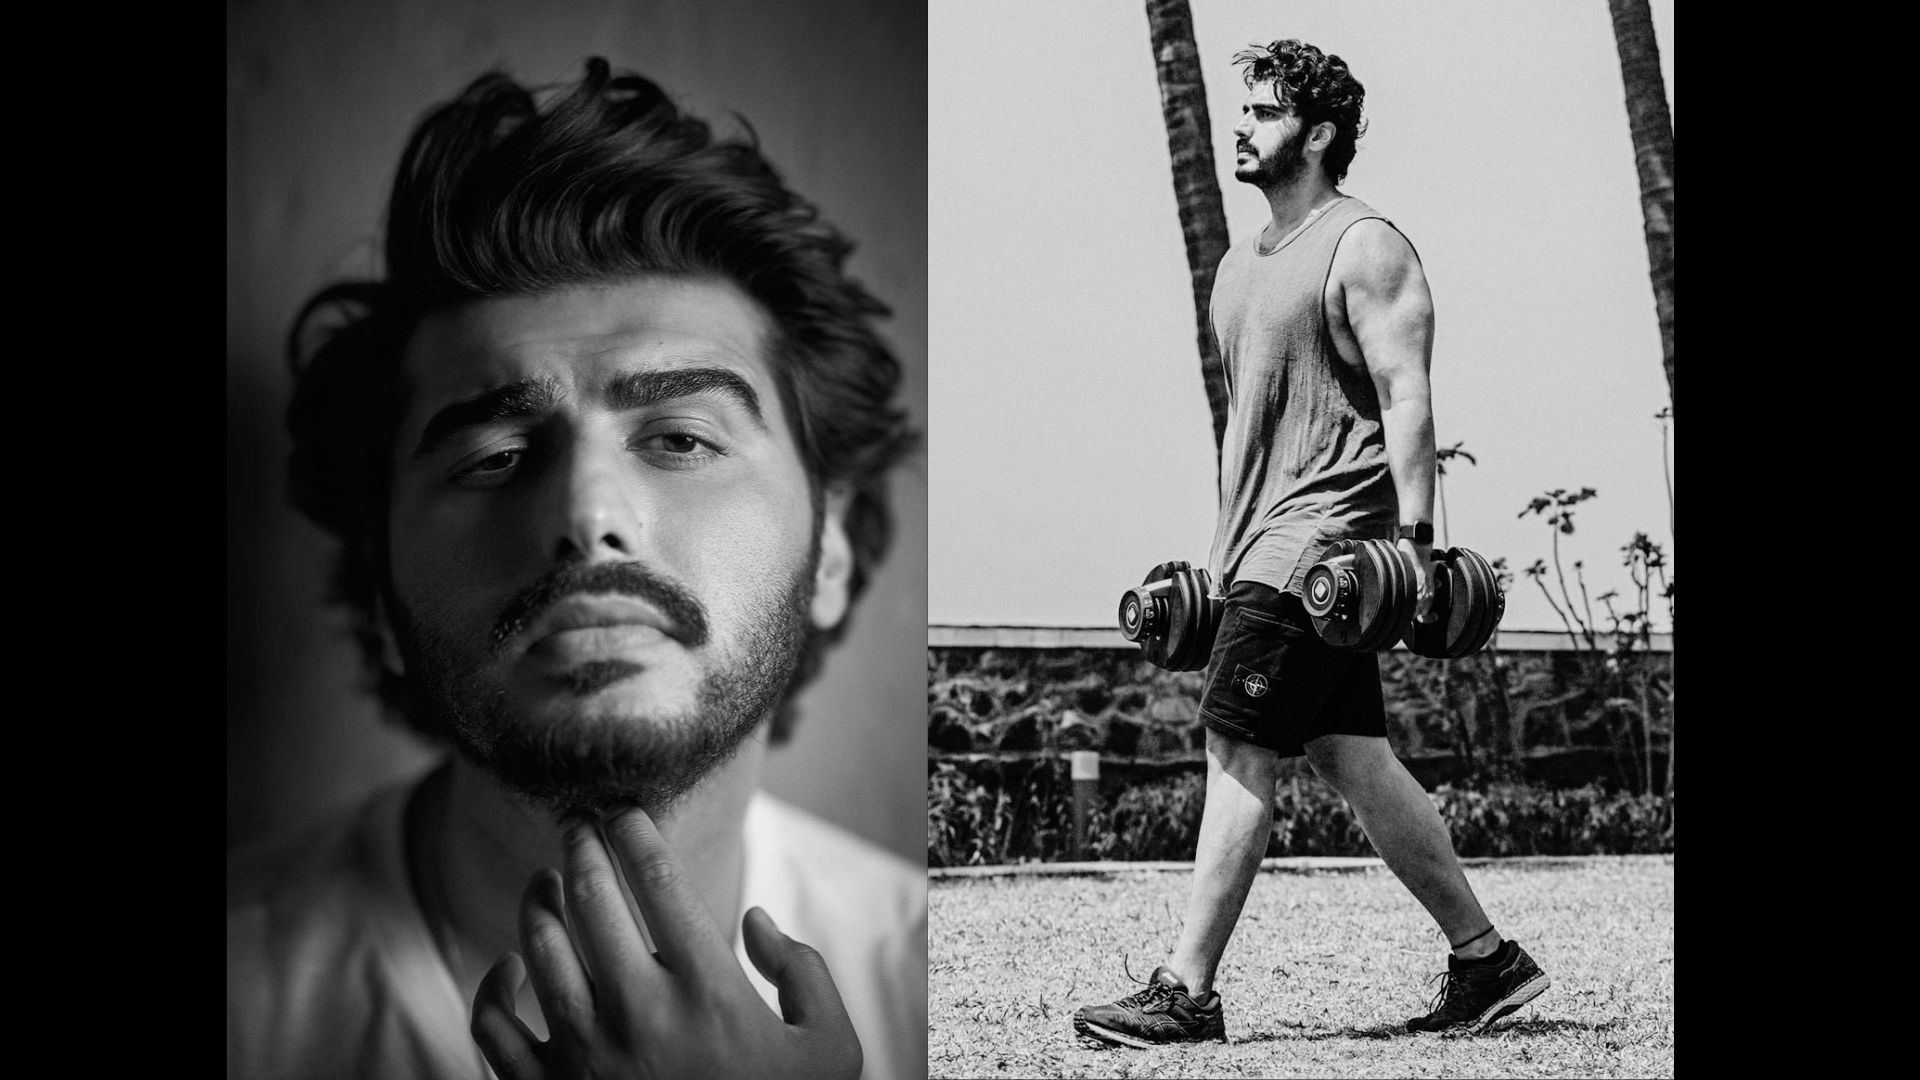 Arjun Kapoor Says 'Let's Do Some Extra Mehnat' While Flaunting His Abs